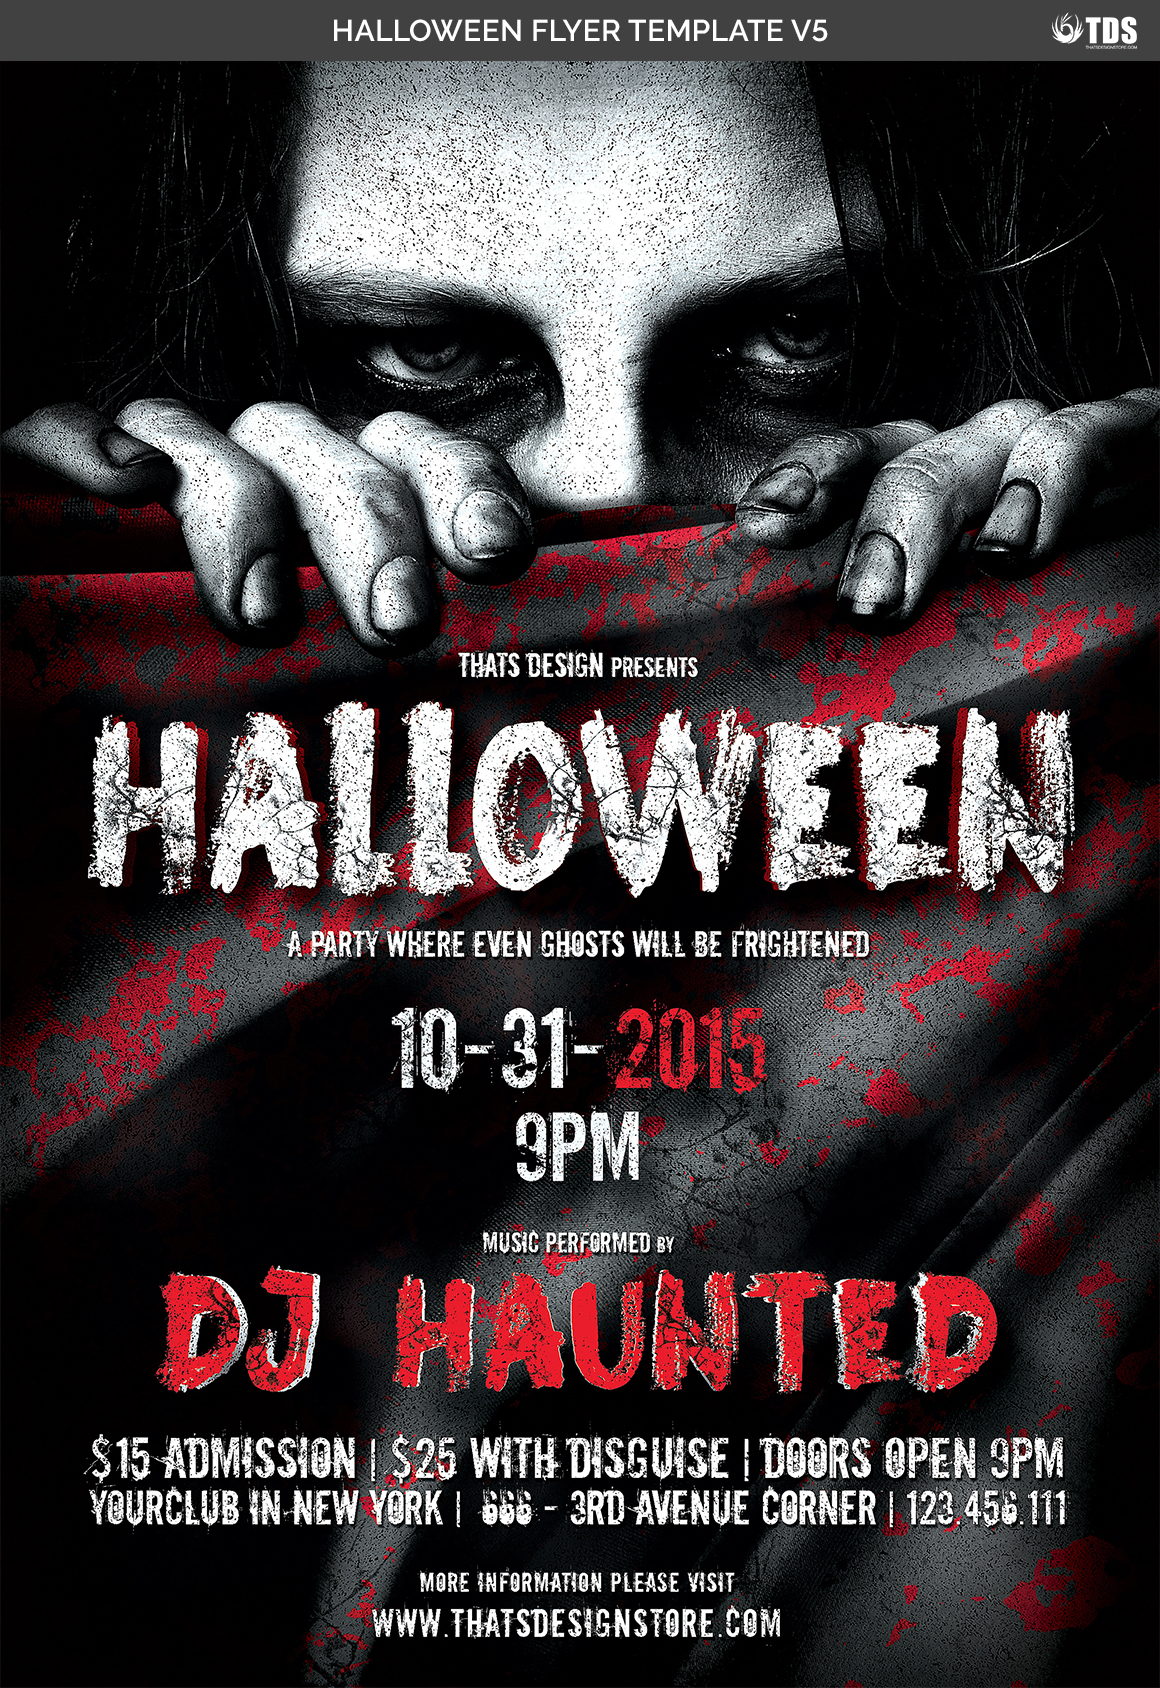 Halloween Flyer Template V5 example image 7